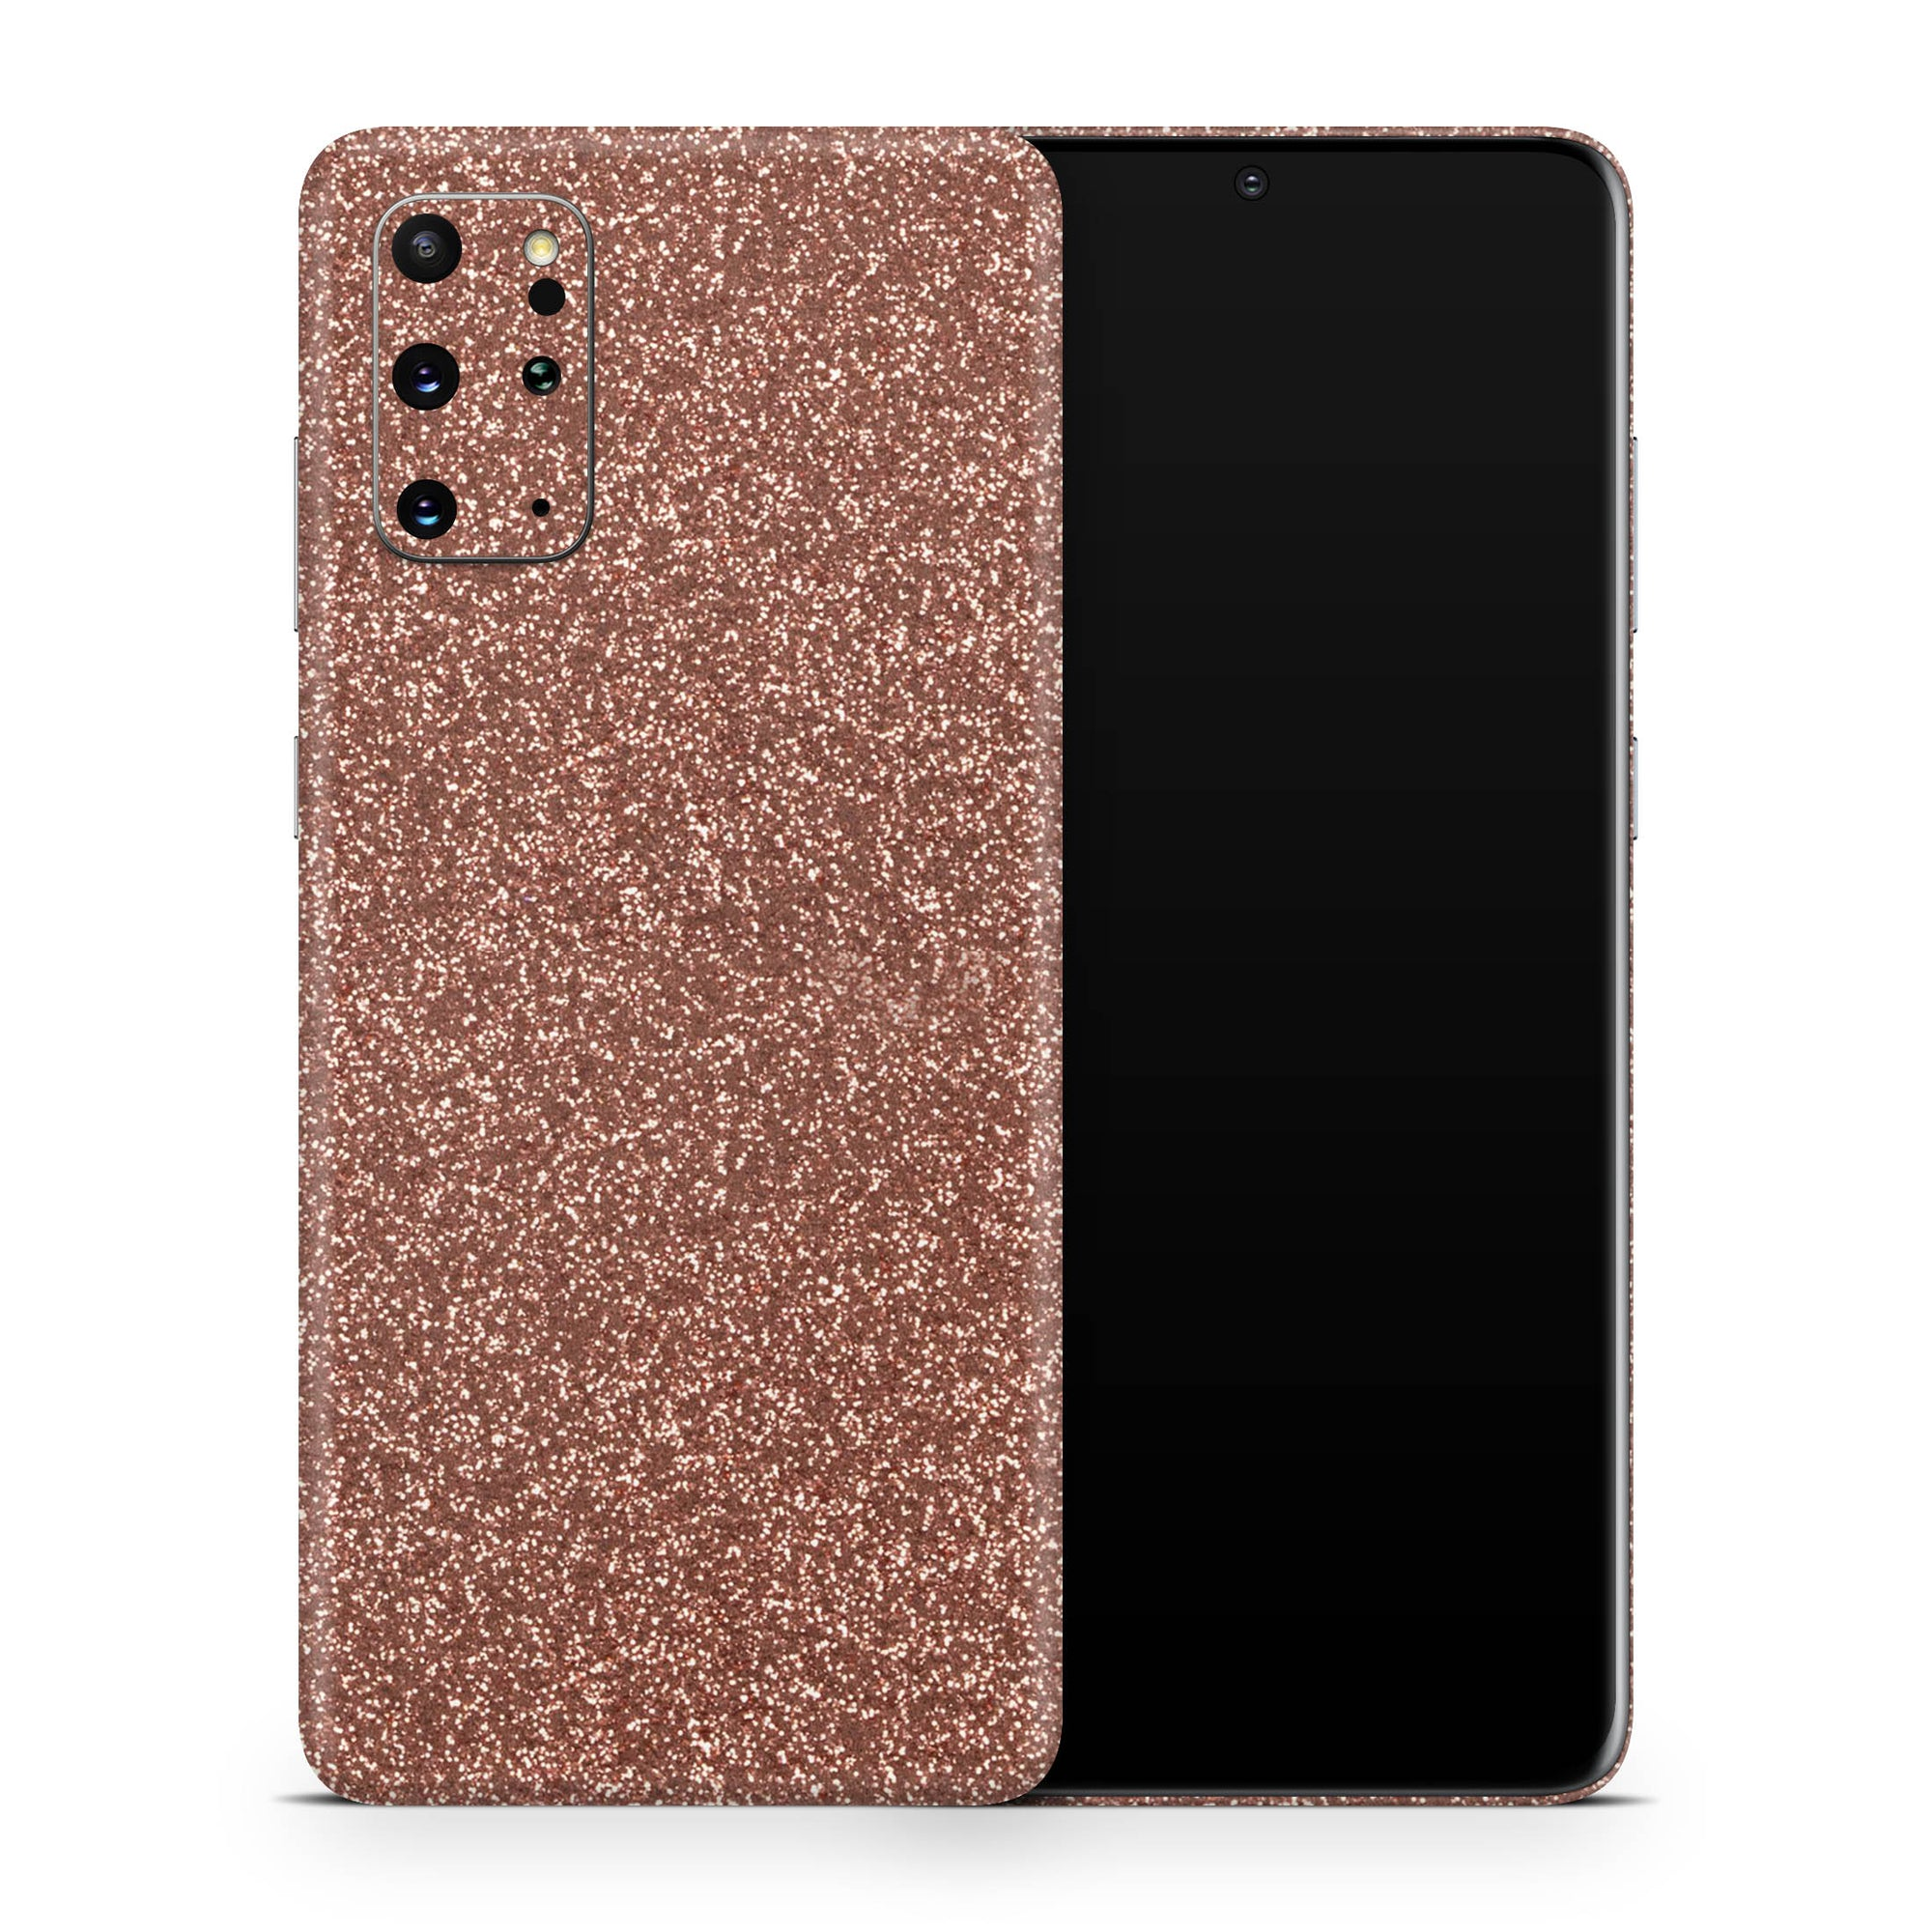 Rosé Glitter Galaxy S20 Ultra Skin + Case-Uniqfind